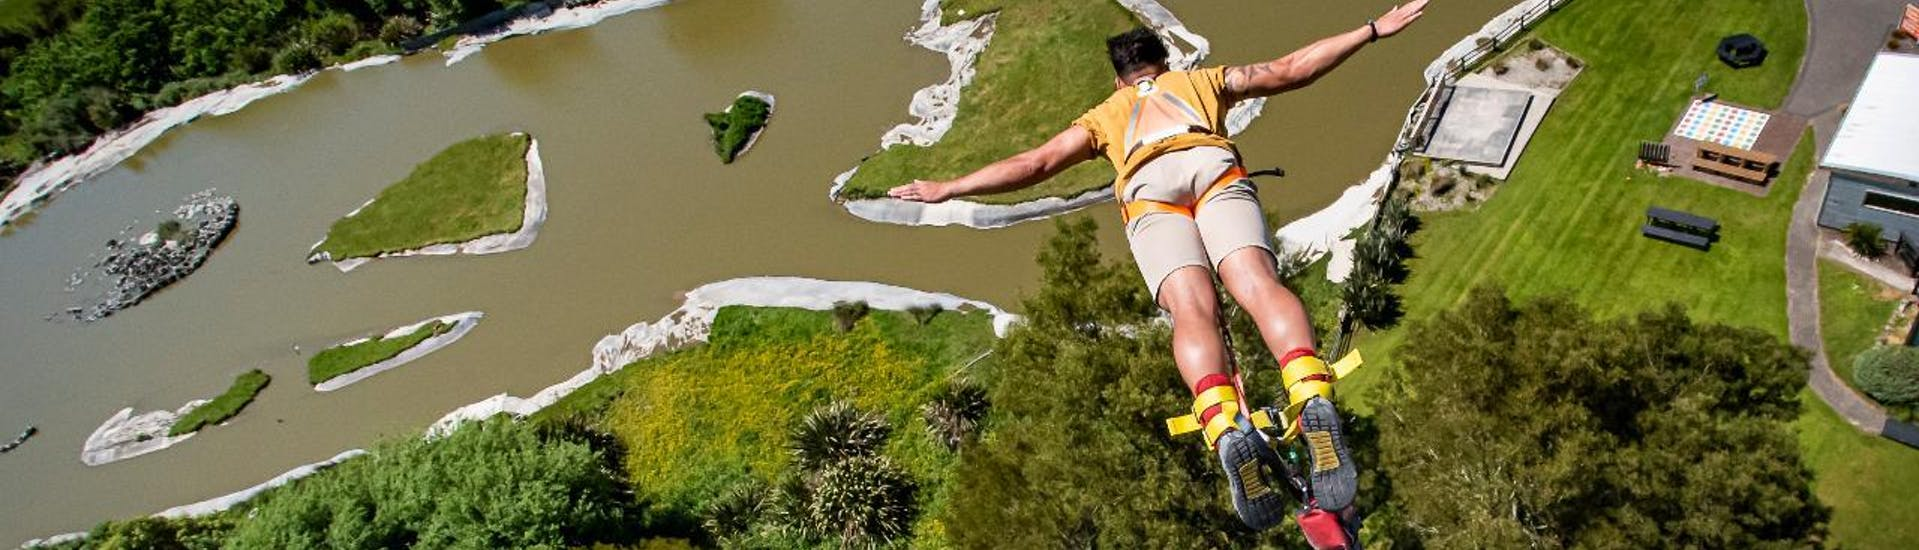 With a VIP Adrenaline Package with Bungy Jump in Rotorua, one happy customer is hurling to the grounds during an adrenaline-packed jumping of a 43m high tower in Velocity Valley Rotorua Adventure Park.